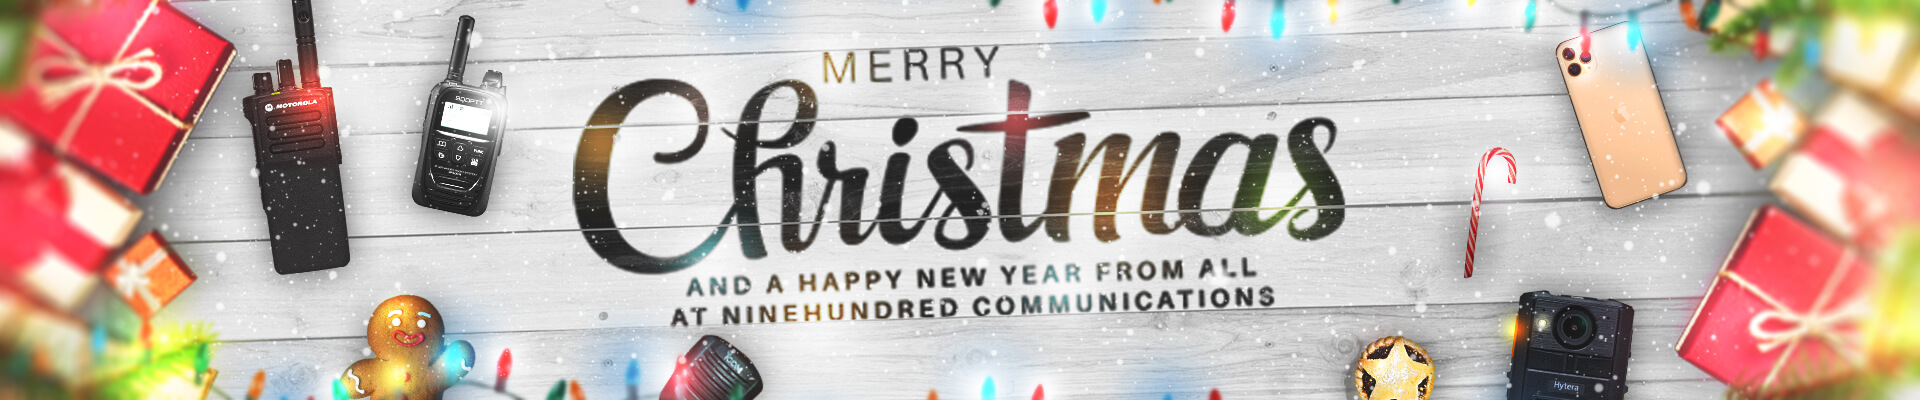 Ninehundred Communications Group Christmas Banner for 2019